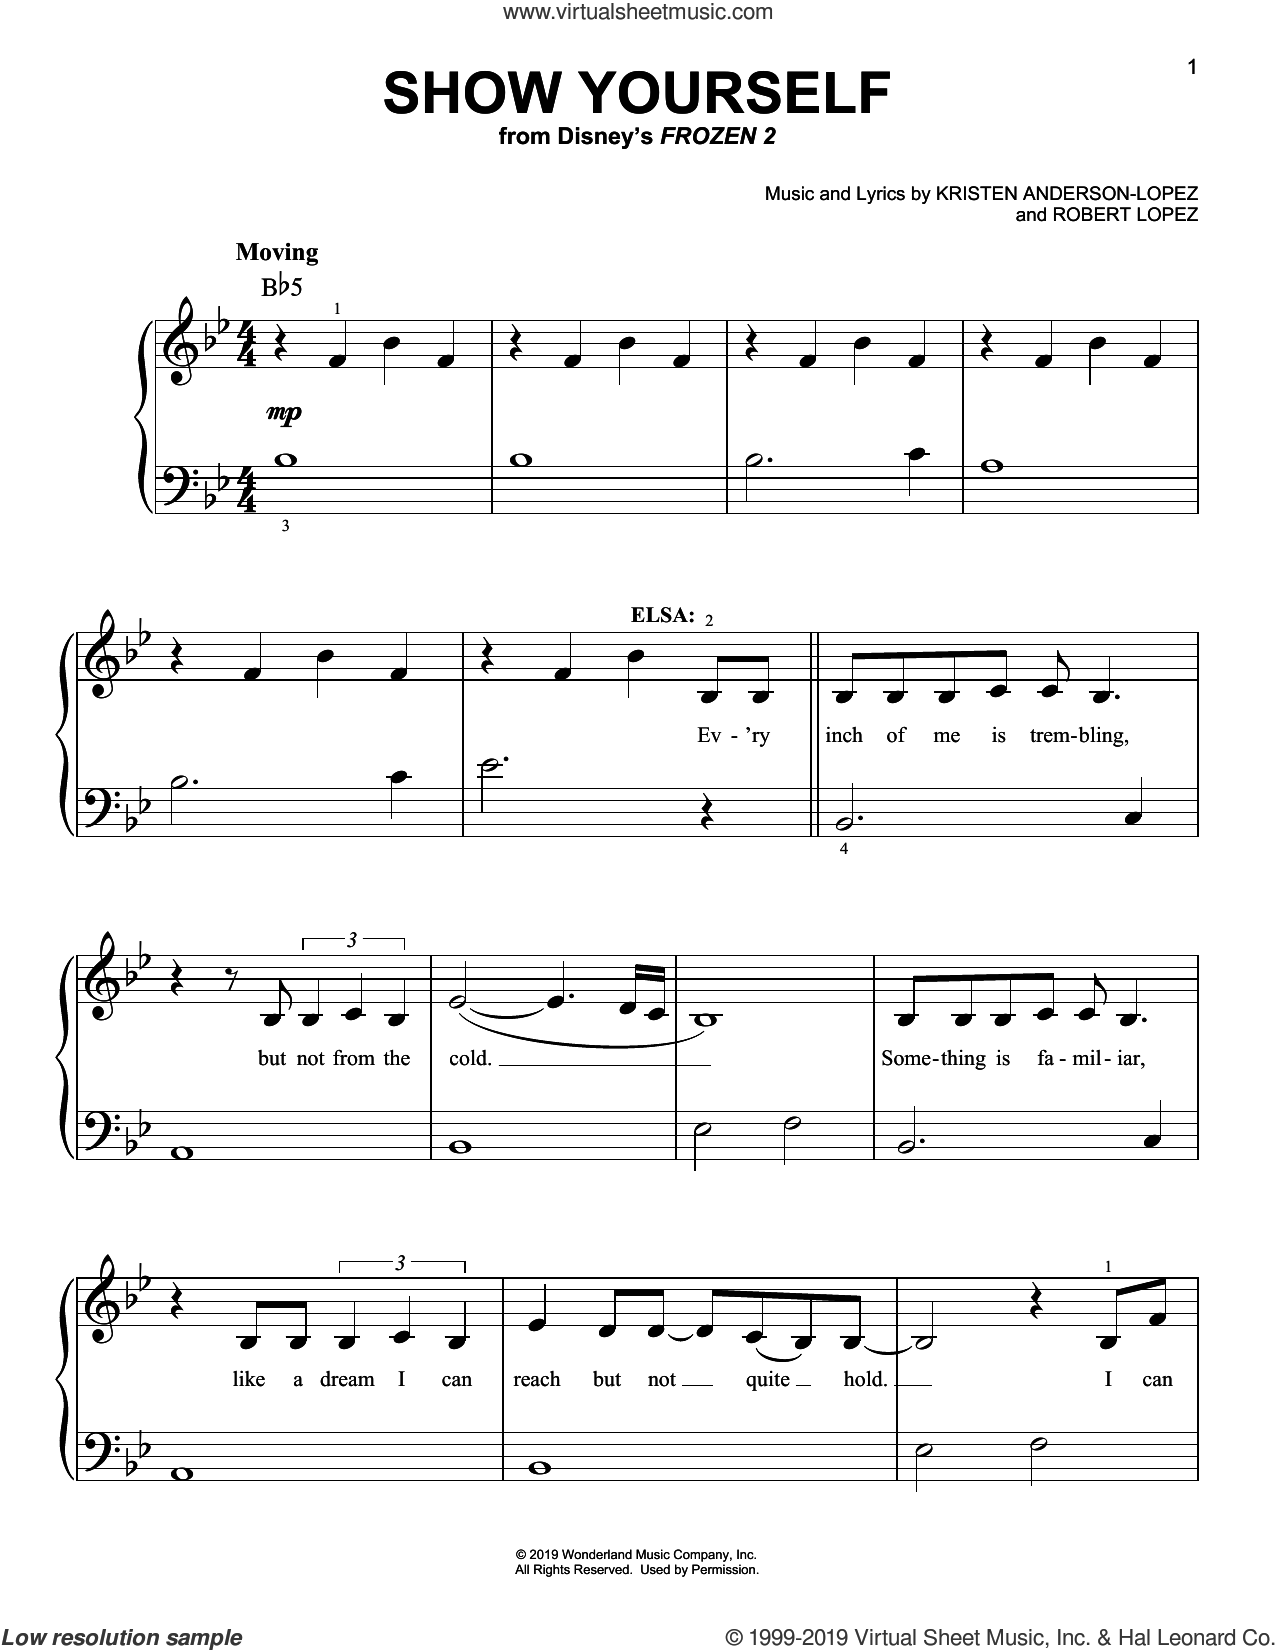 Show Yourself (from Disney's Frozen 2) sheet music for piano solo by Idina Menzel and Evan Rachel Wood, Kristen Anderson-Lopez and Robert Lopez, easy skill level